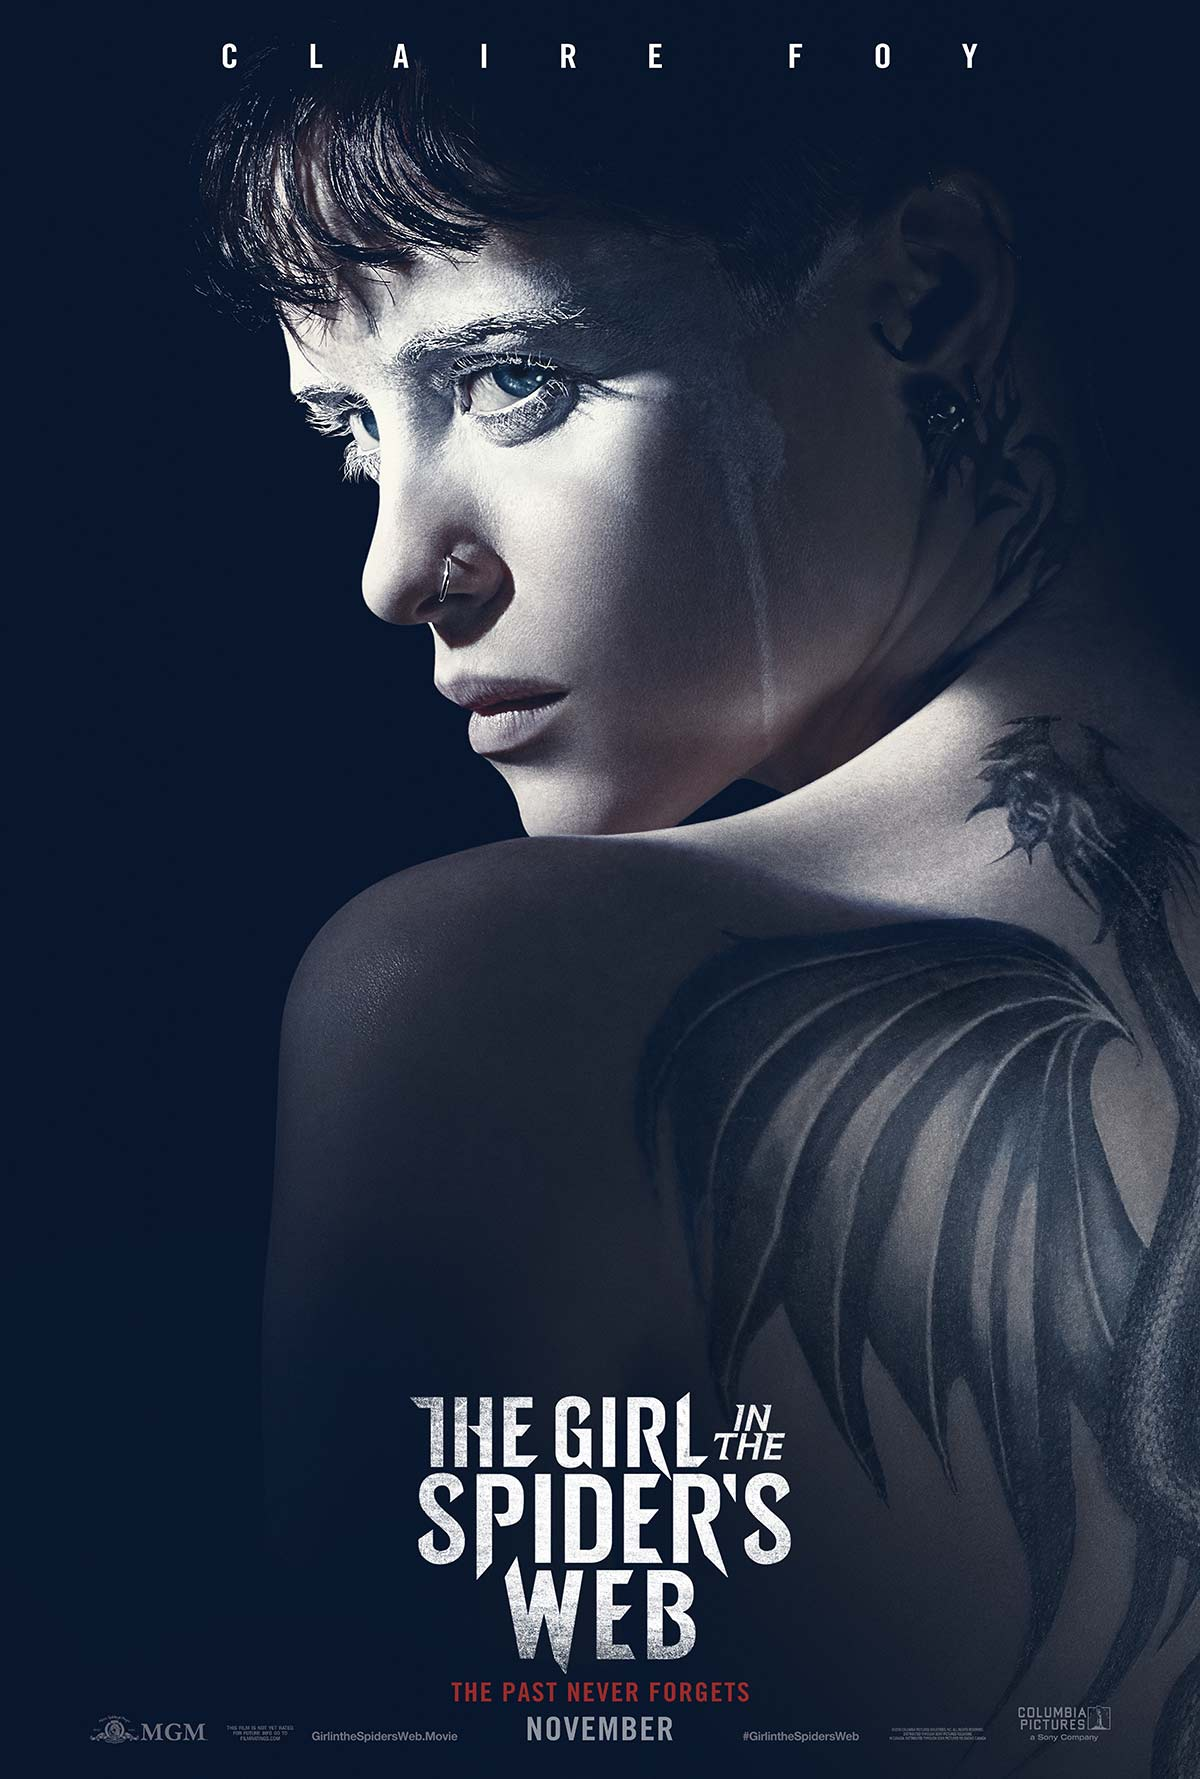 THE GIRL IN THE SPIDER'S WEB HITS THEATRES IN 2018